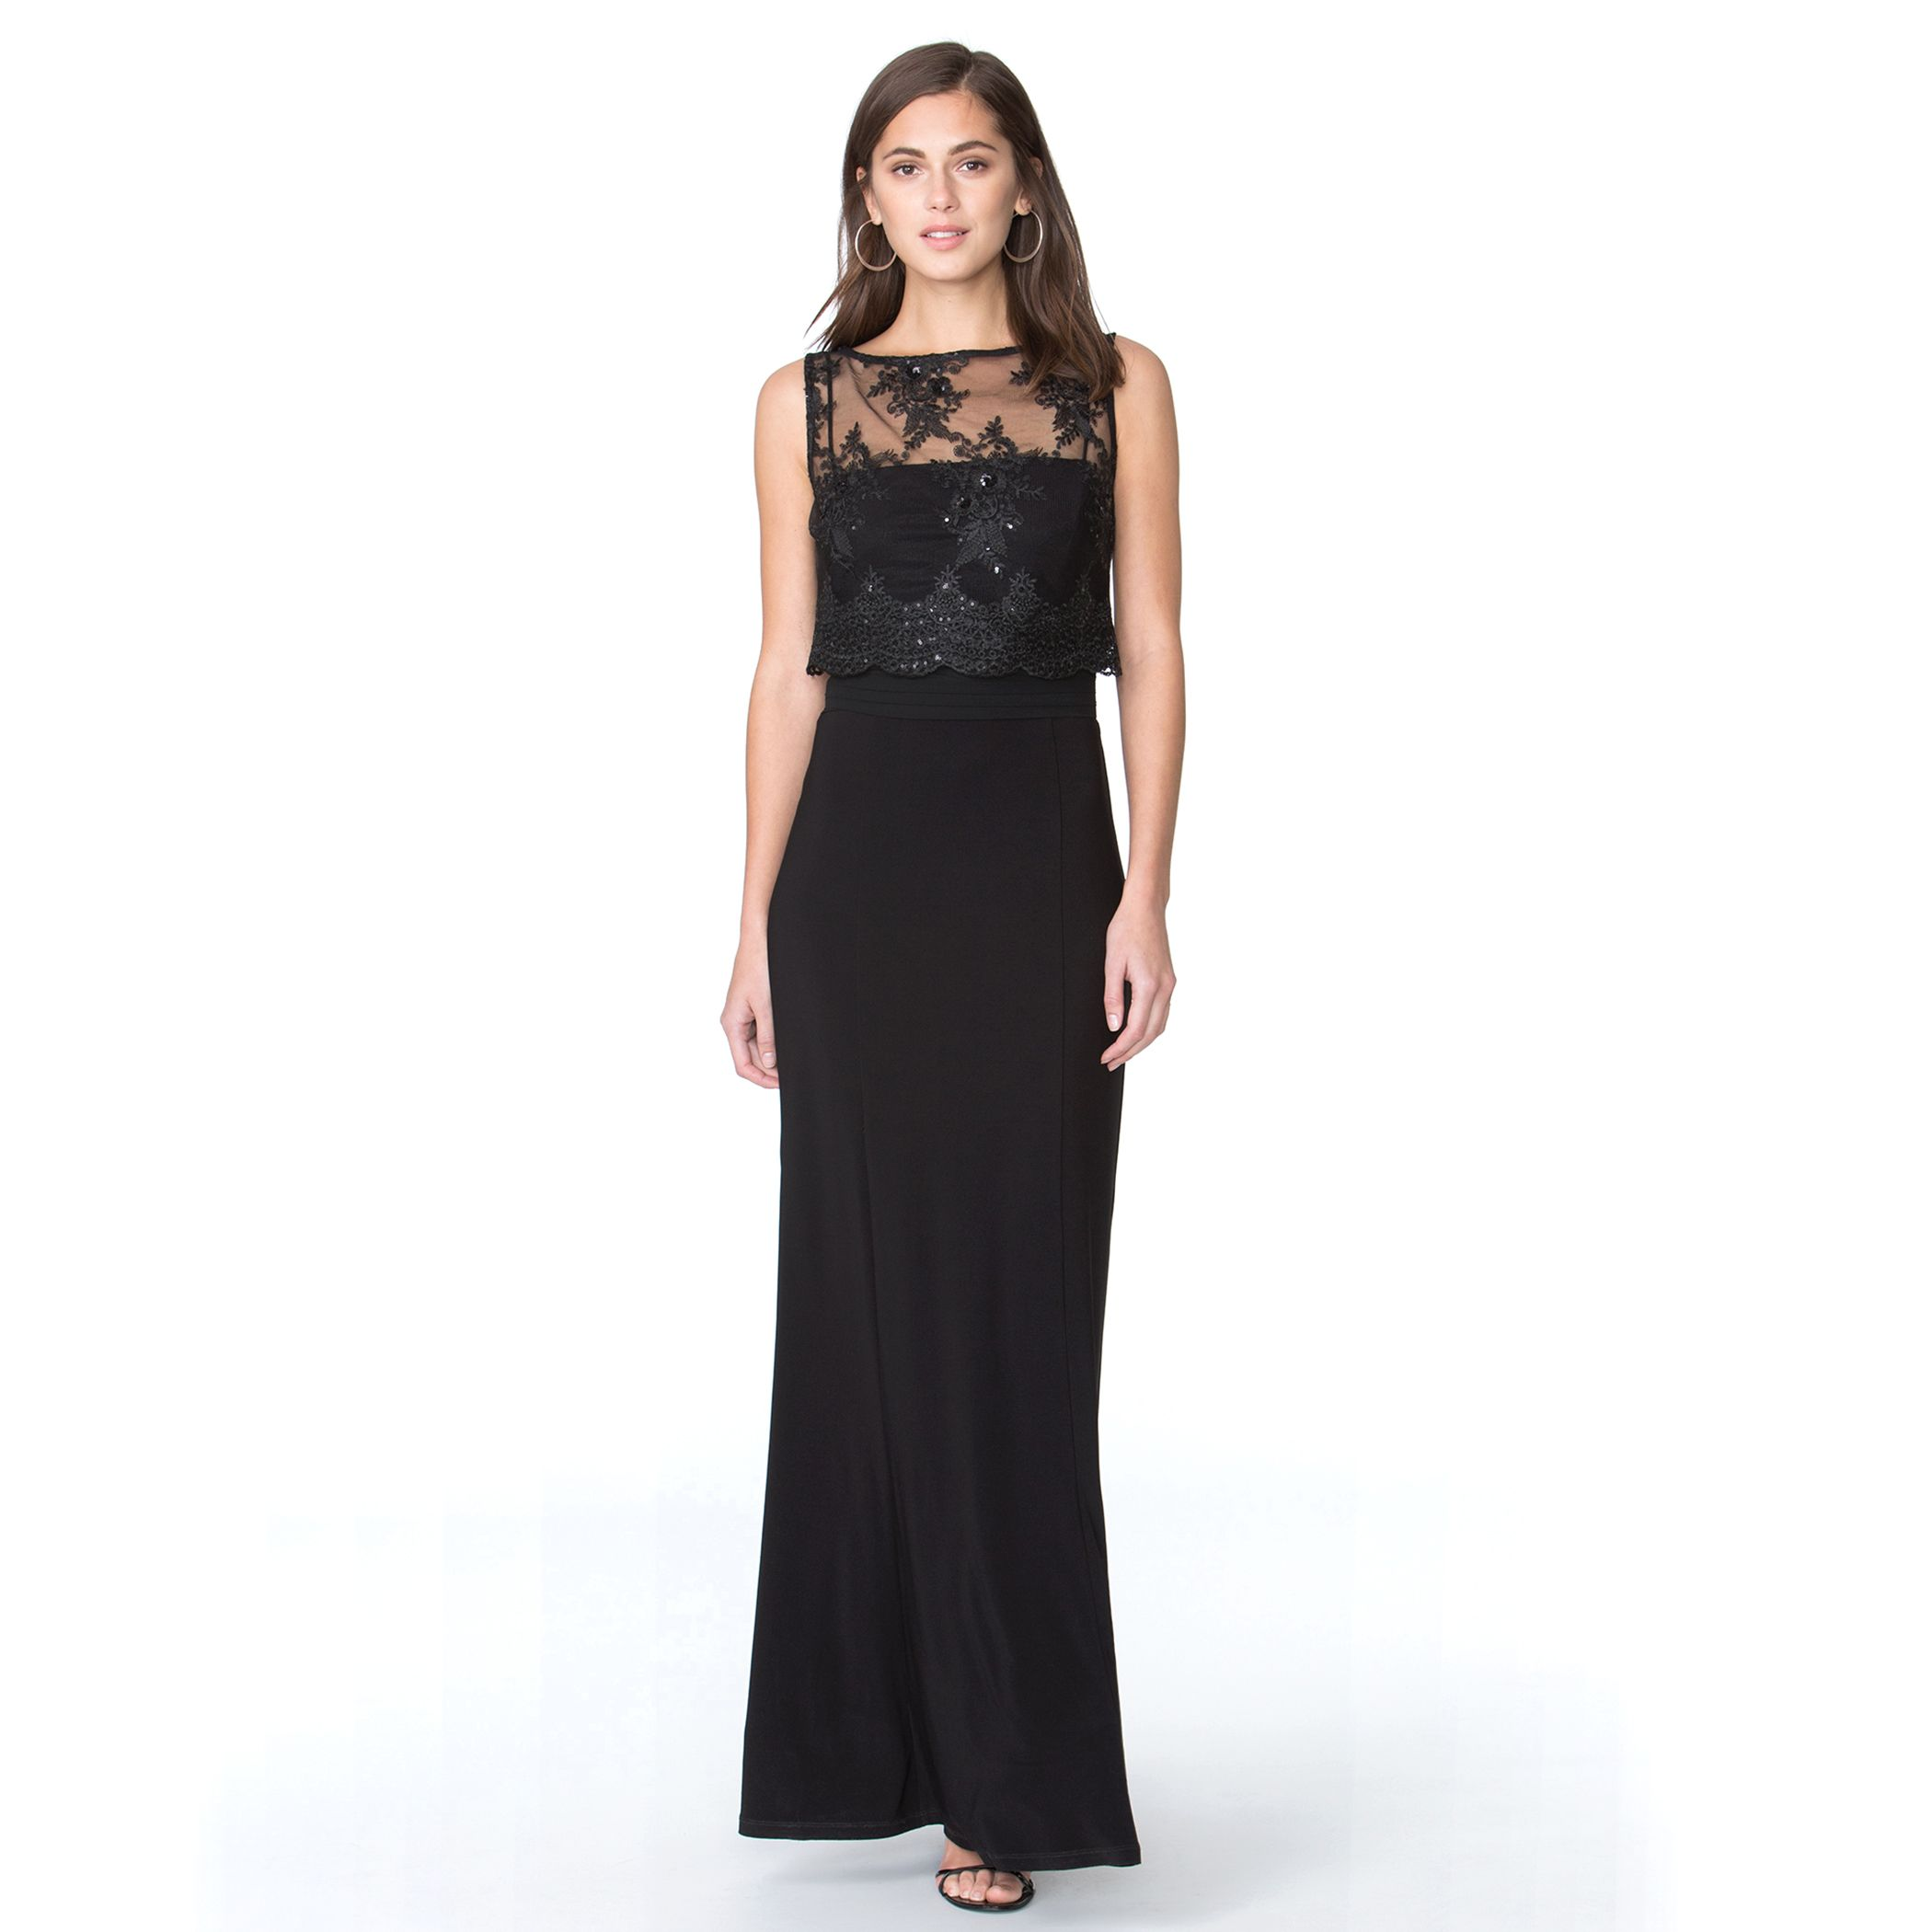 Lace Overlay Evening Dress